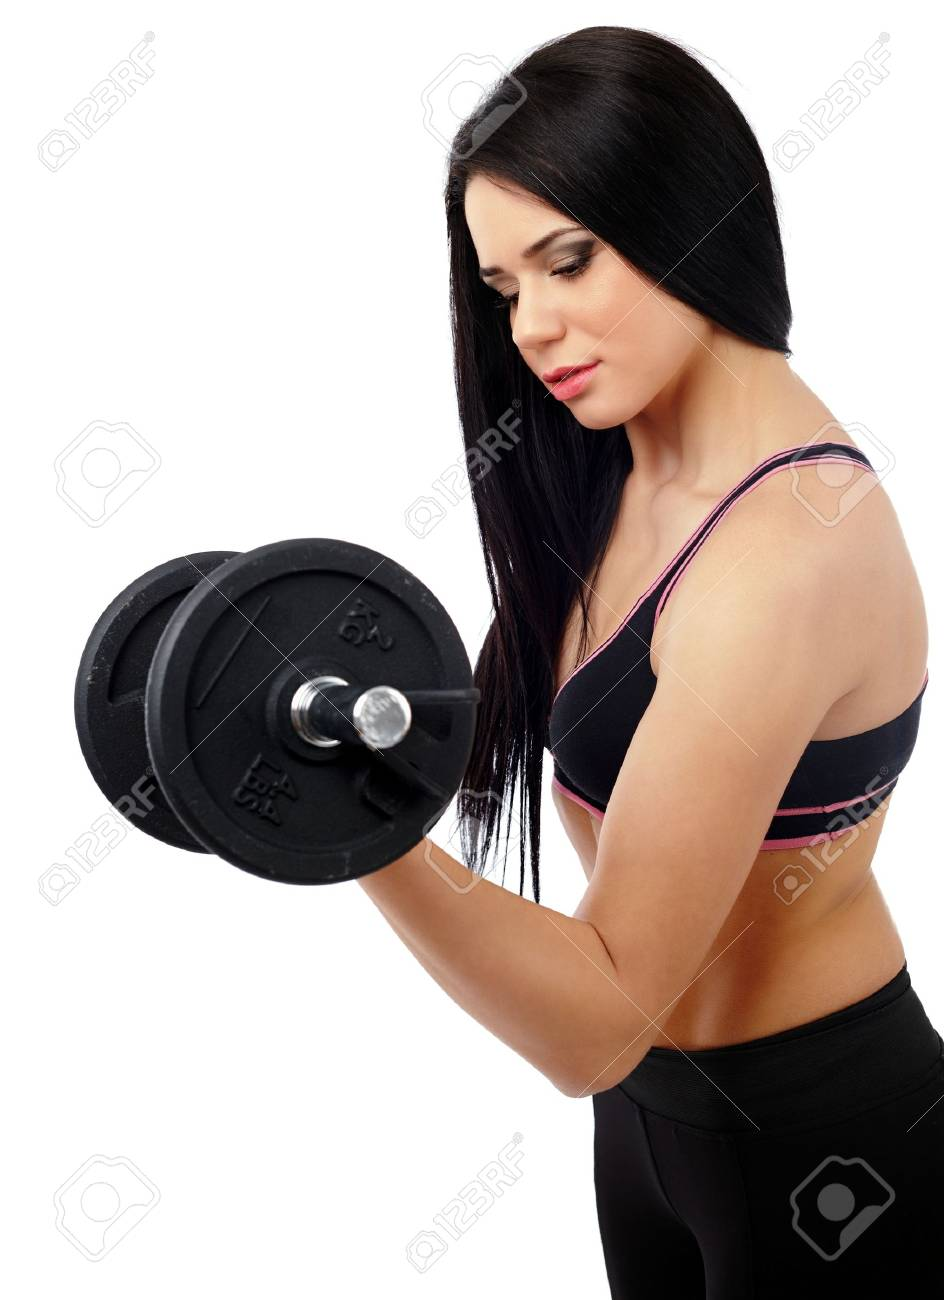 Young lady exercising with weights isolated on white background Stock Photo - 17605325